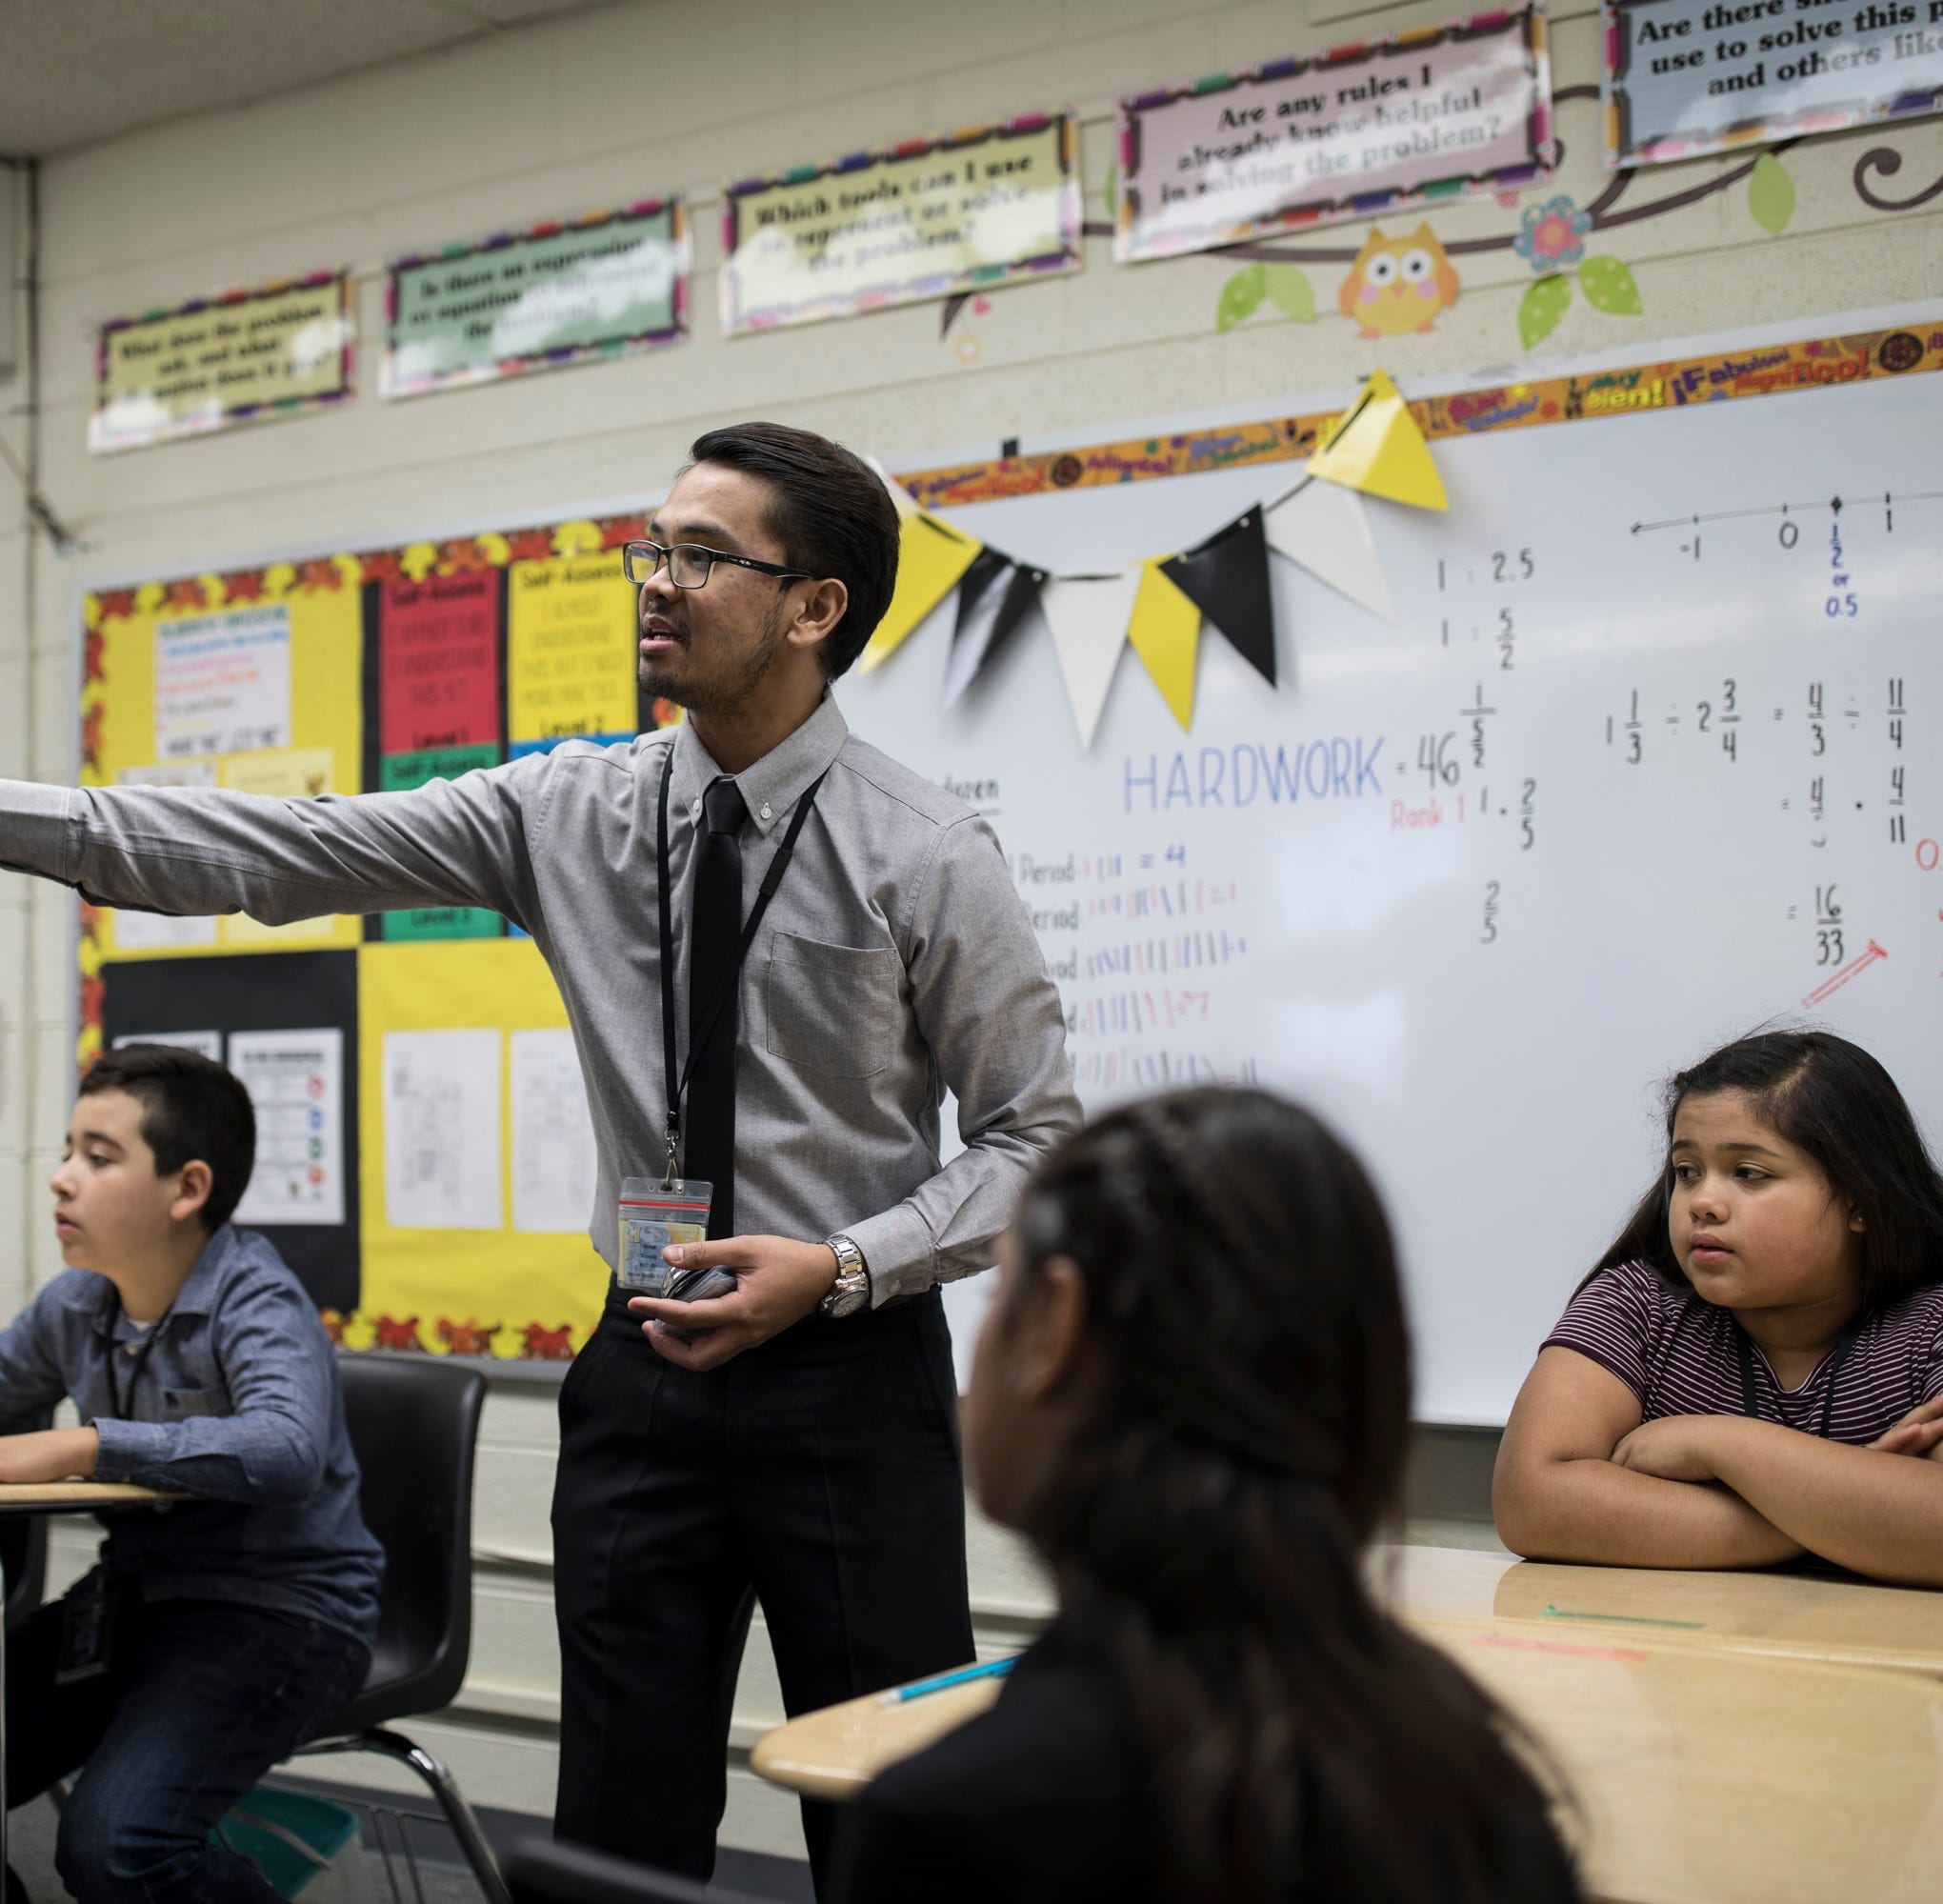 Foreign teachers are paying to work in New Mexico public schools. Here's why.